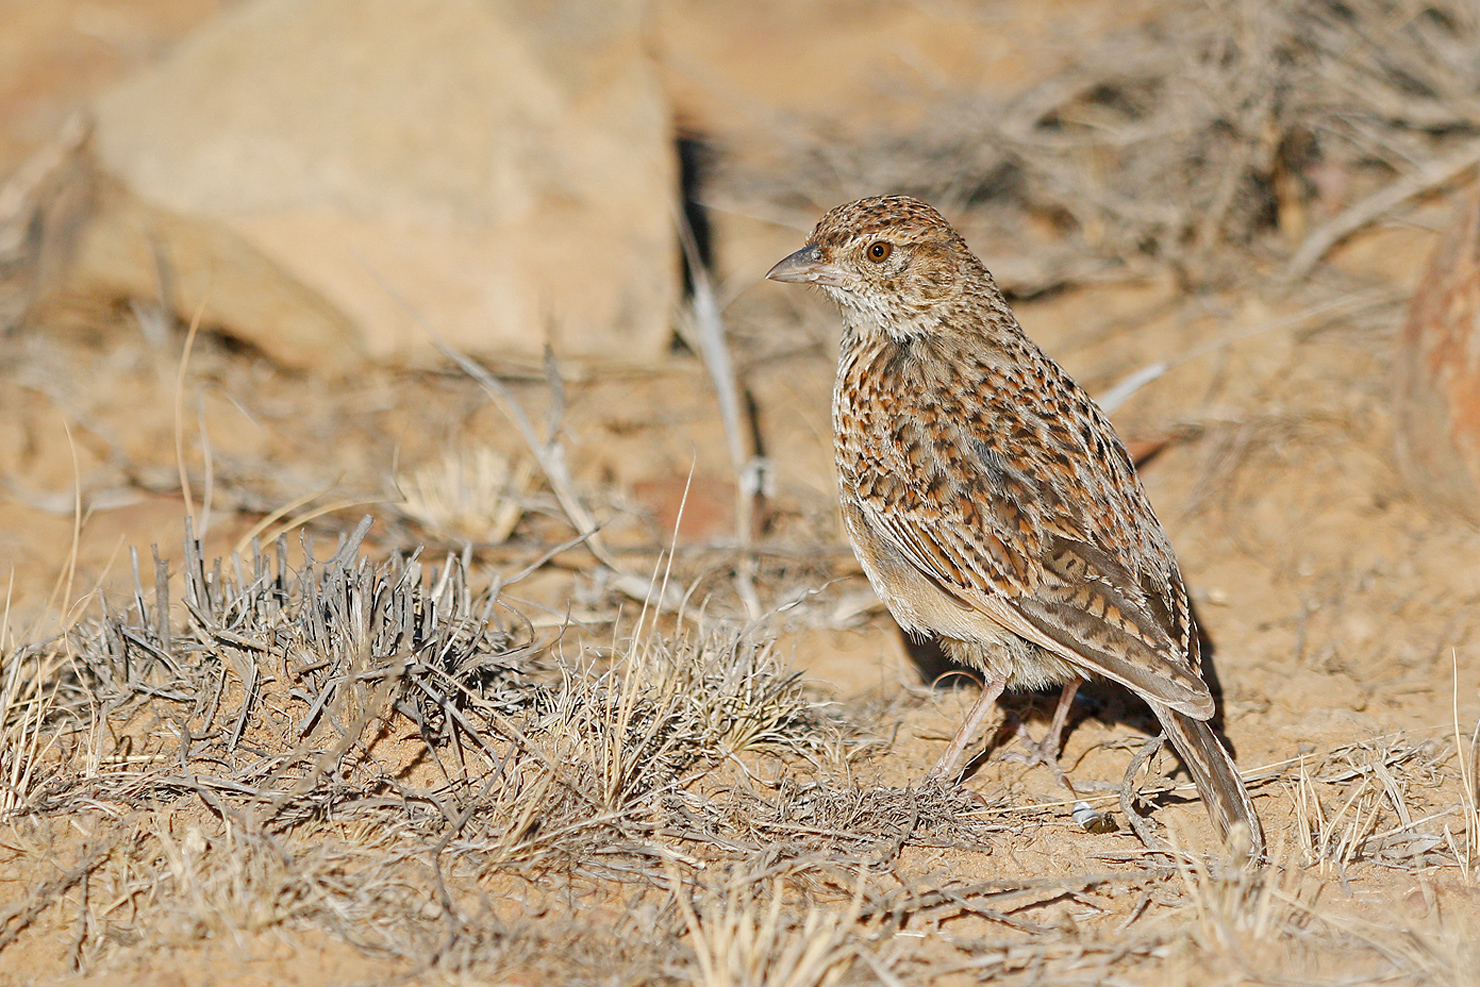 Eastern Clapper Lark (juvenile) / Mountain Zebra Park, Eastern Cape, South Africa / 17 December 2016